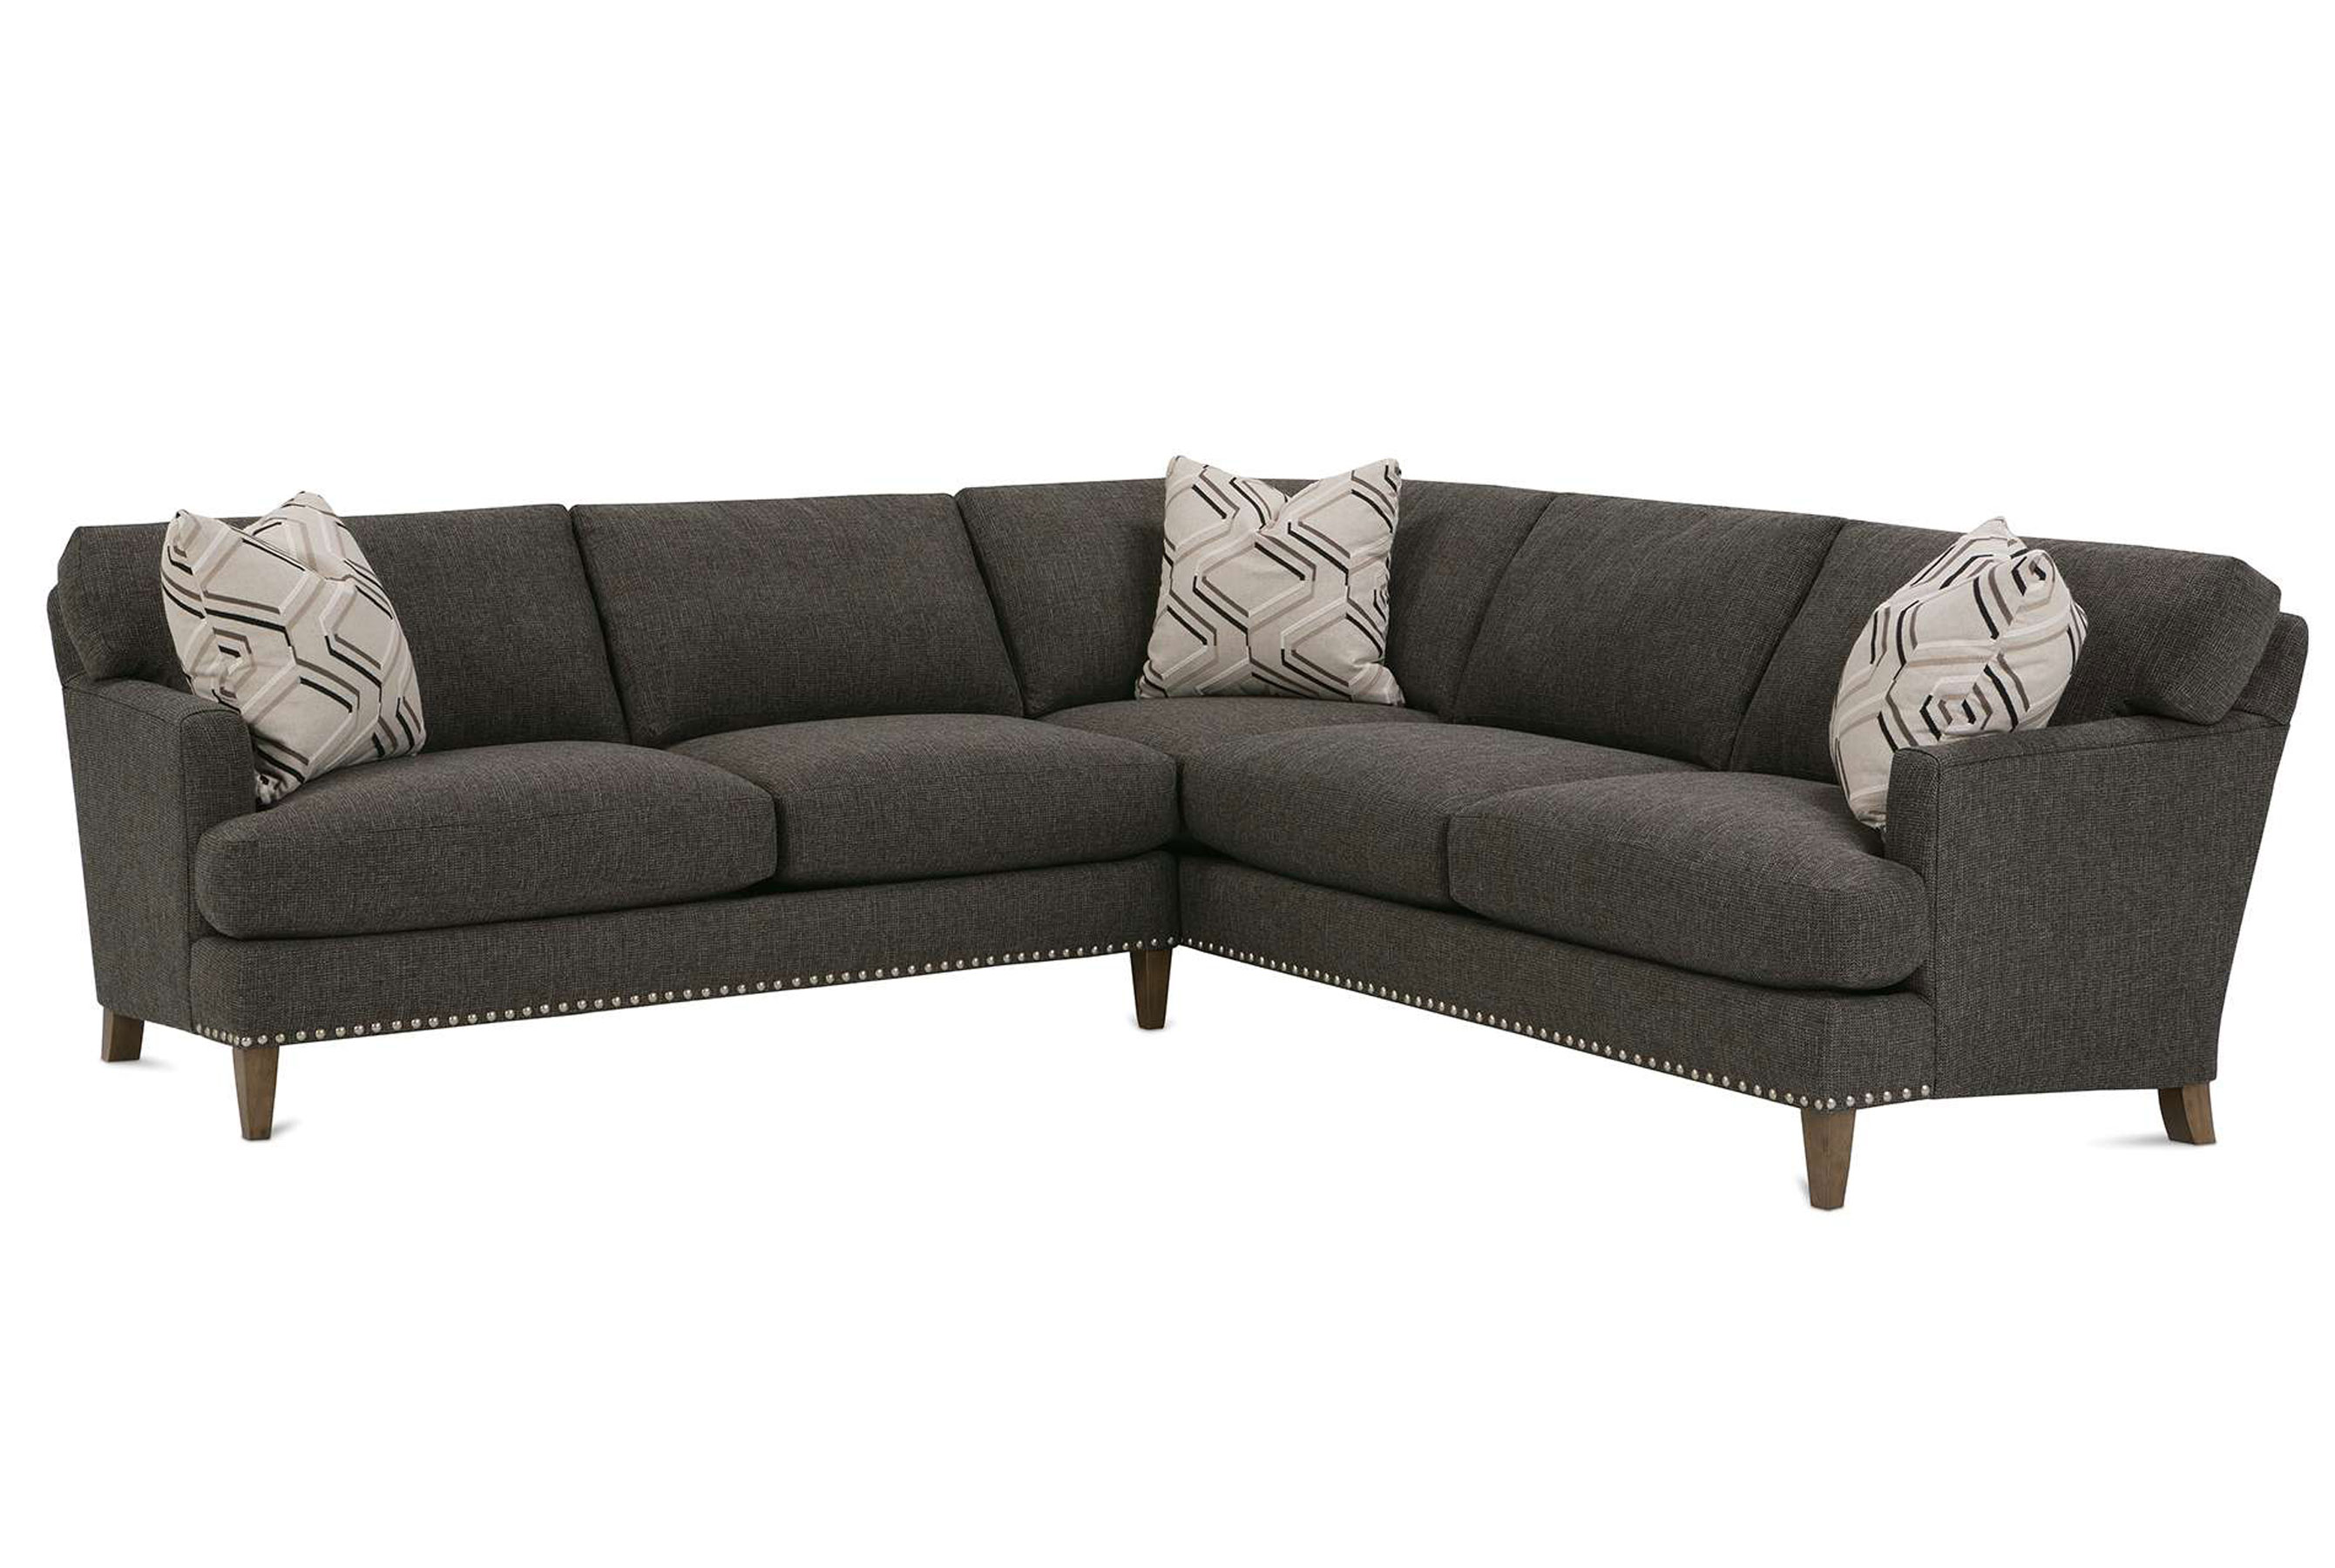 Super Kendall P510 Sectional Sofas And Sectionals Short Links Chair Design For Home Short Linksinfo